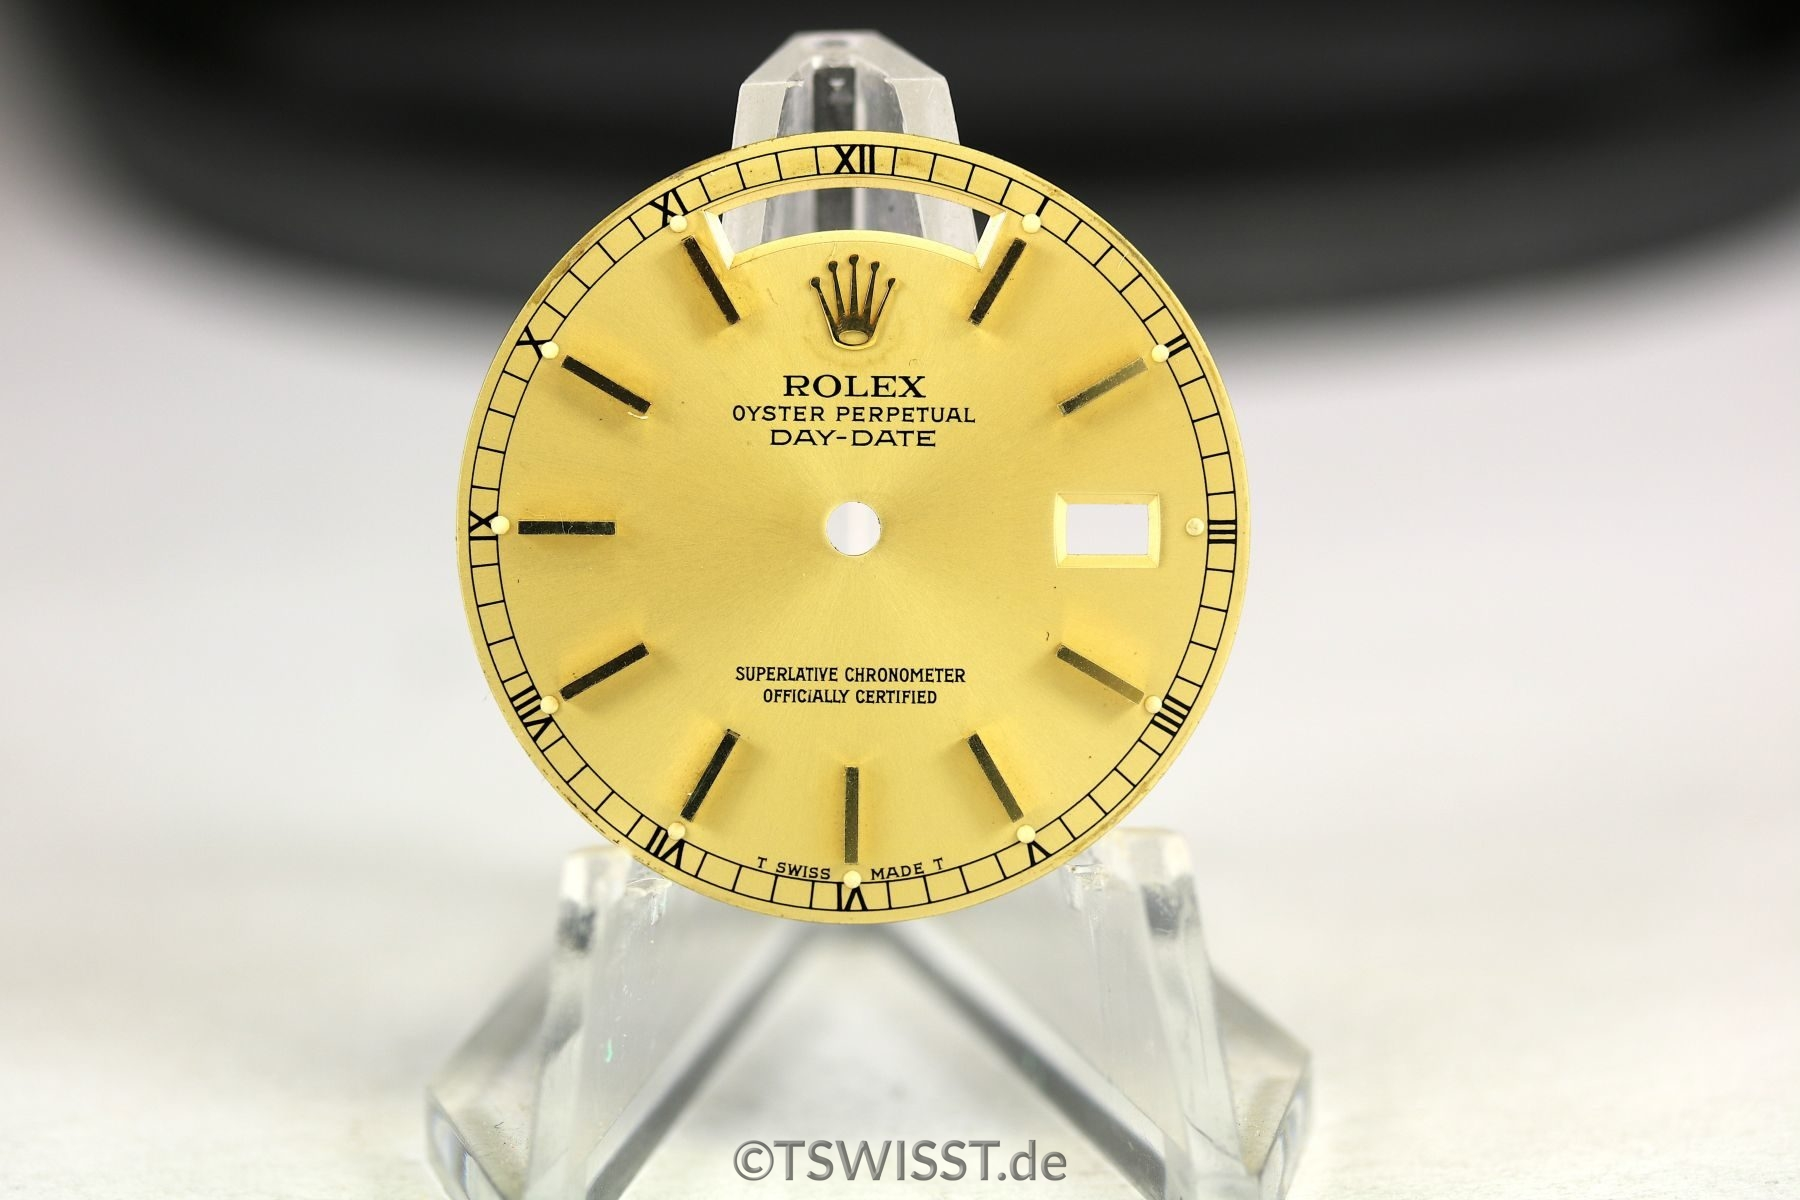 Rolex Day-Date dial incl. hands